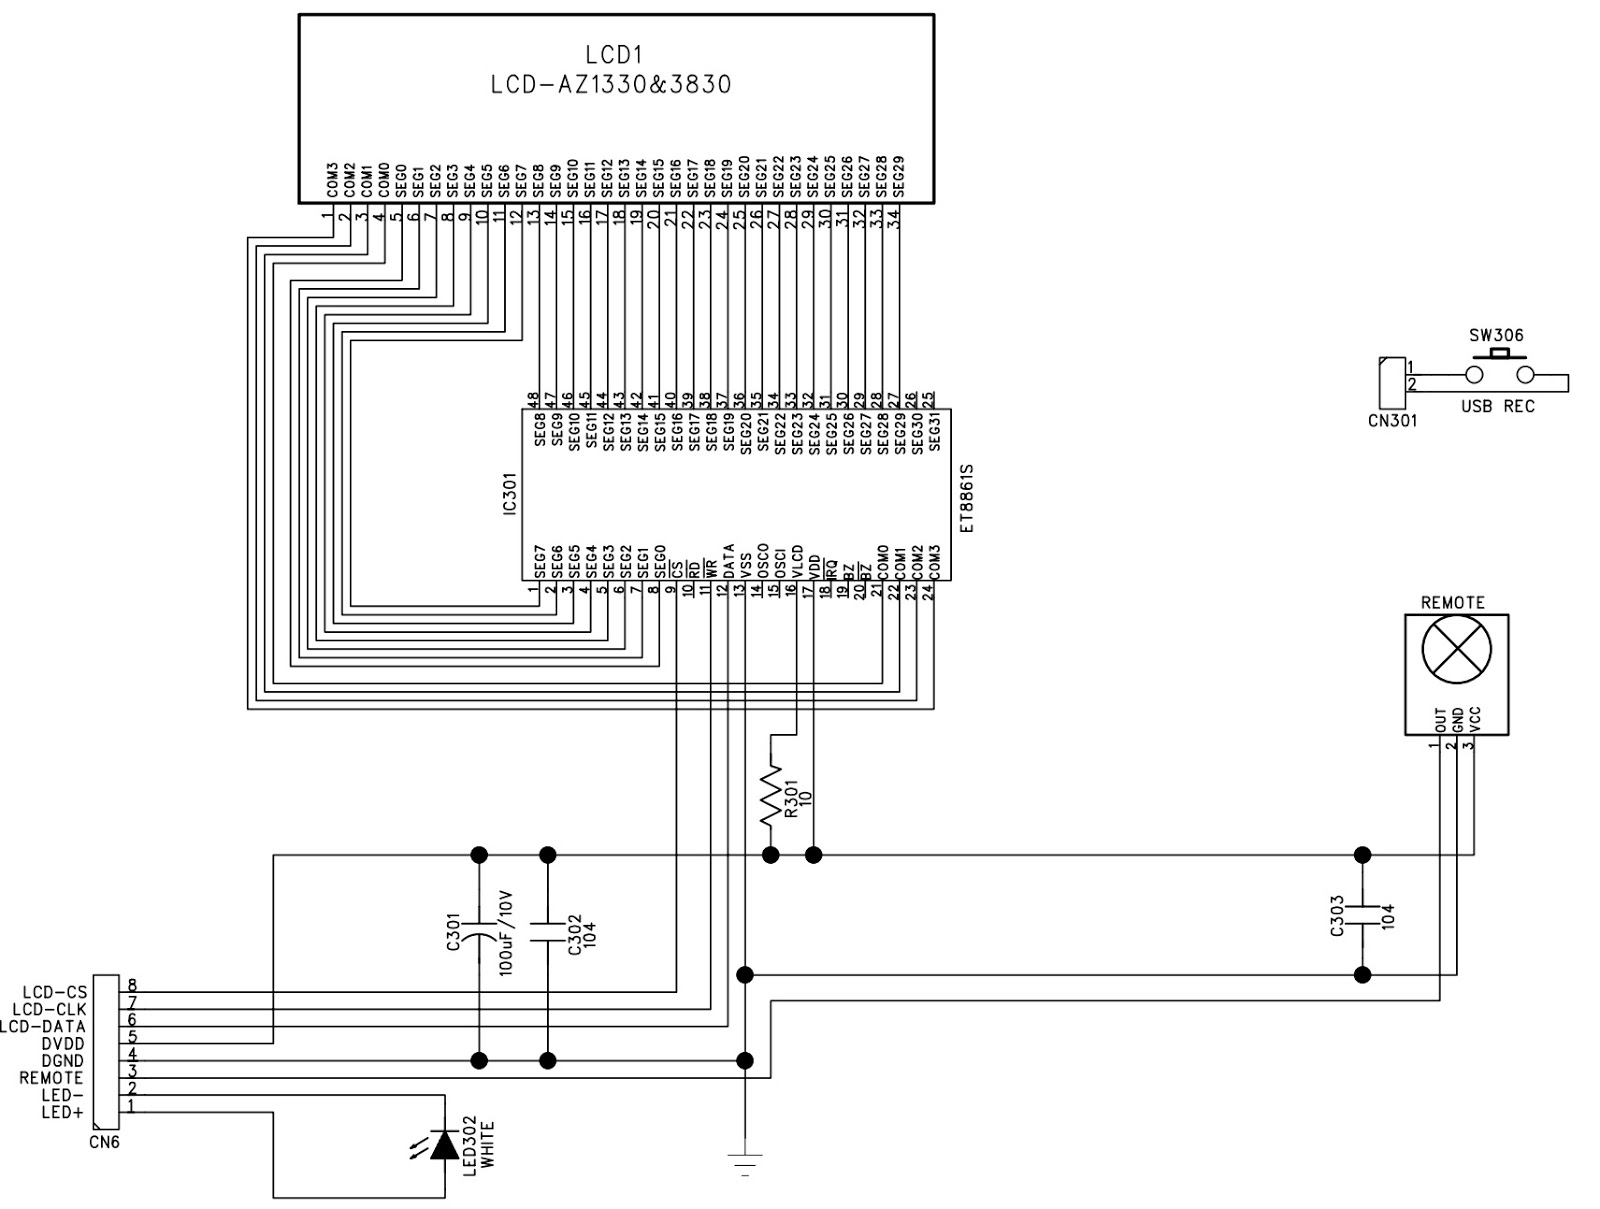 Manguonblog Thng Hai 2016 Electronic Circuit Diagram Tv Vertical Using La78041 La78040 Wma Memory Click On The Schematics To Zoom In